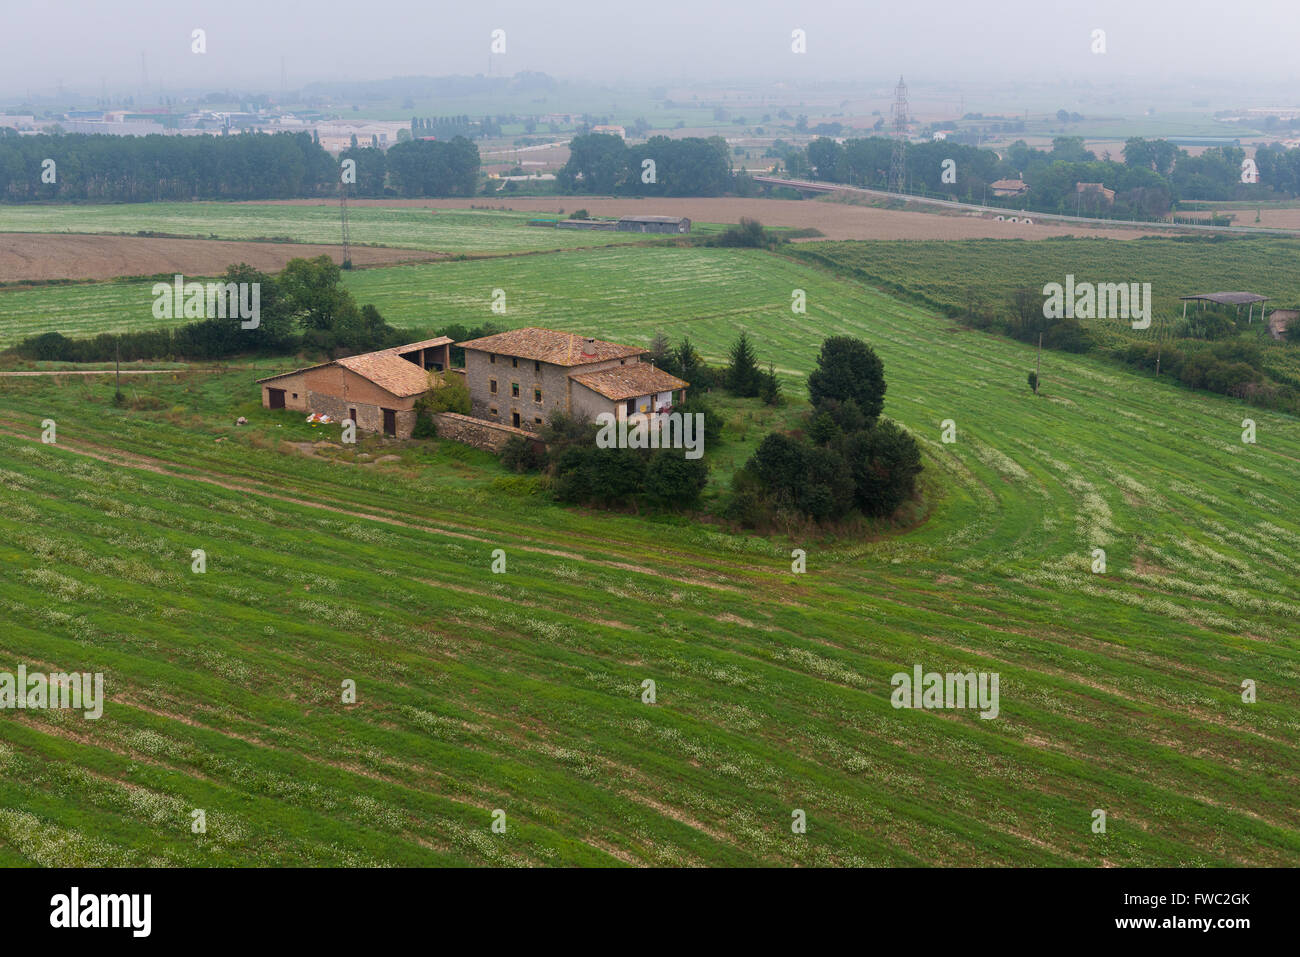 Small farm house among fields from air balloon near Vic, Spain - Stock Image